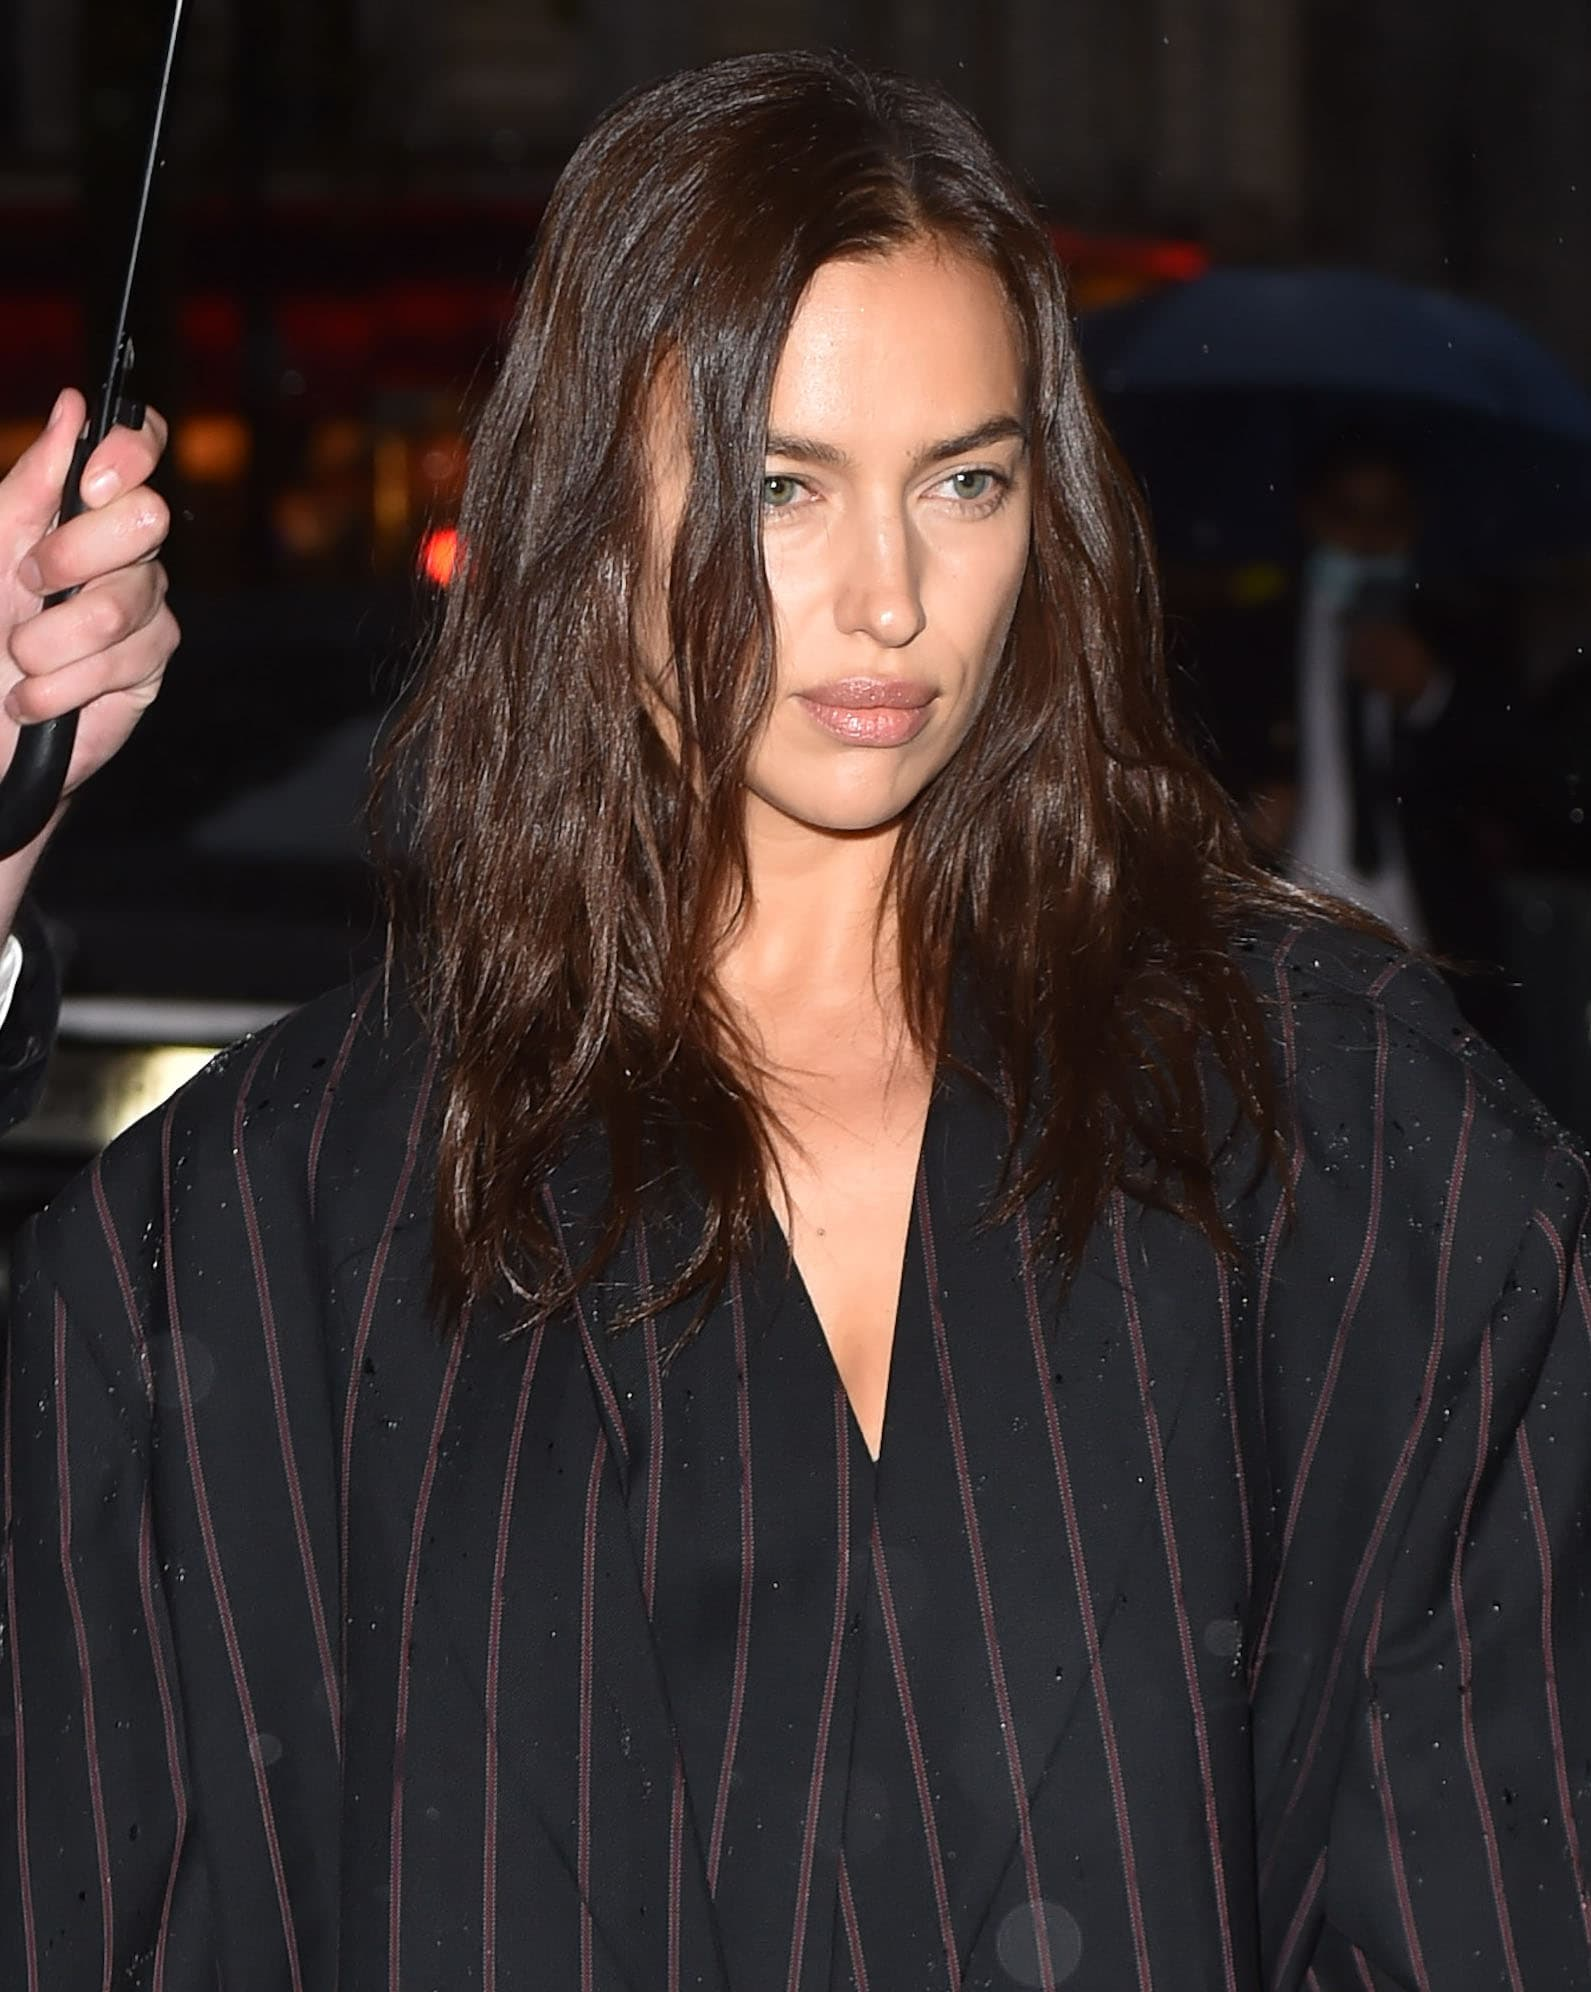 Irina Shayk wears barely-there makeup and lets her brunette tresses fall loose in tousled waves around her shoulders